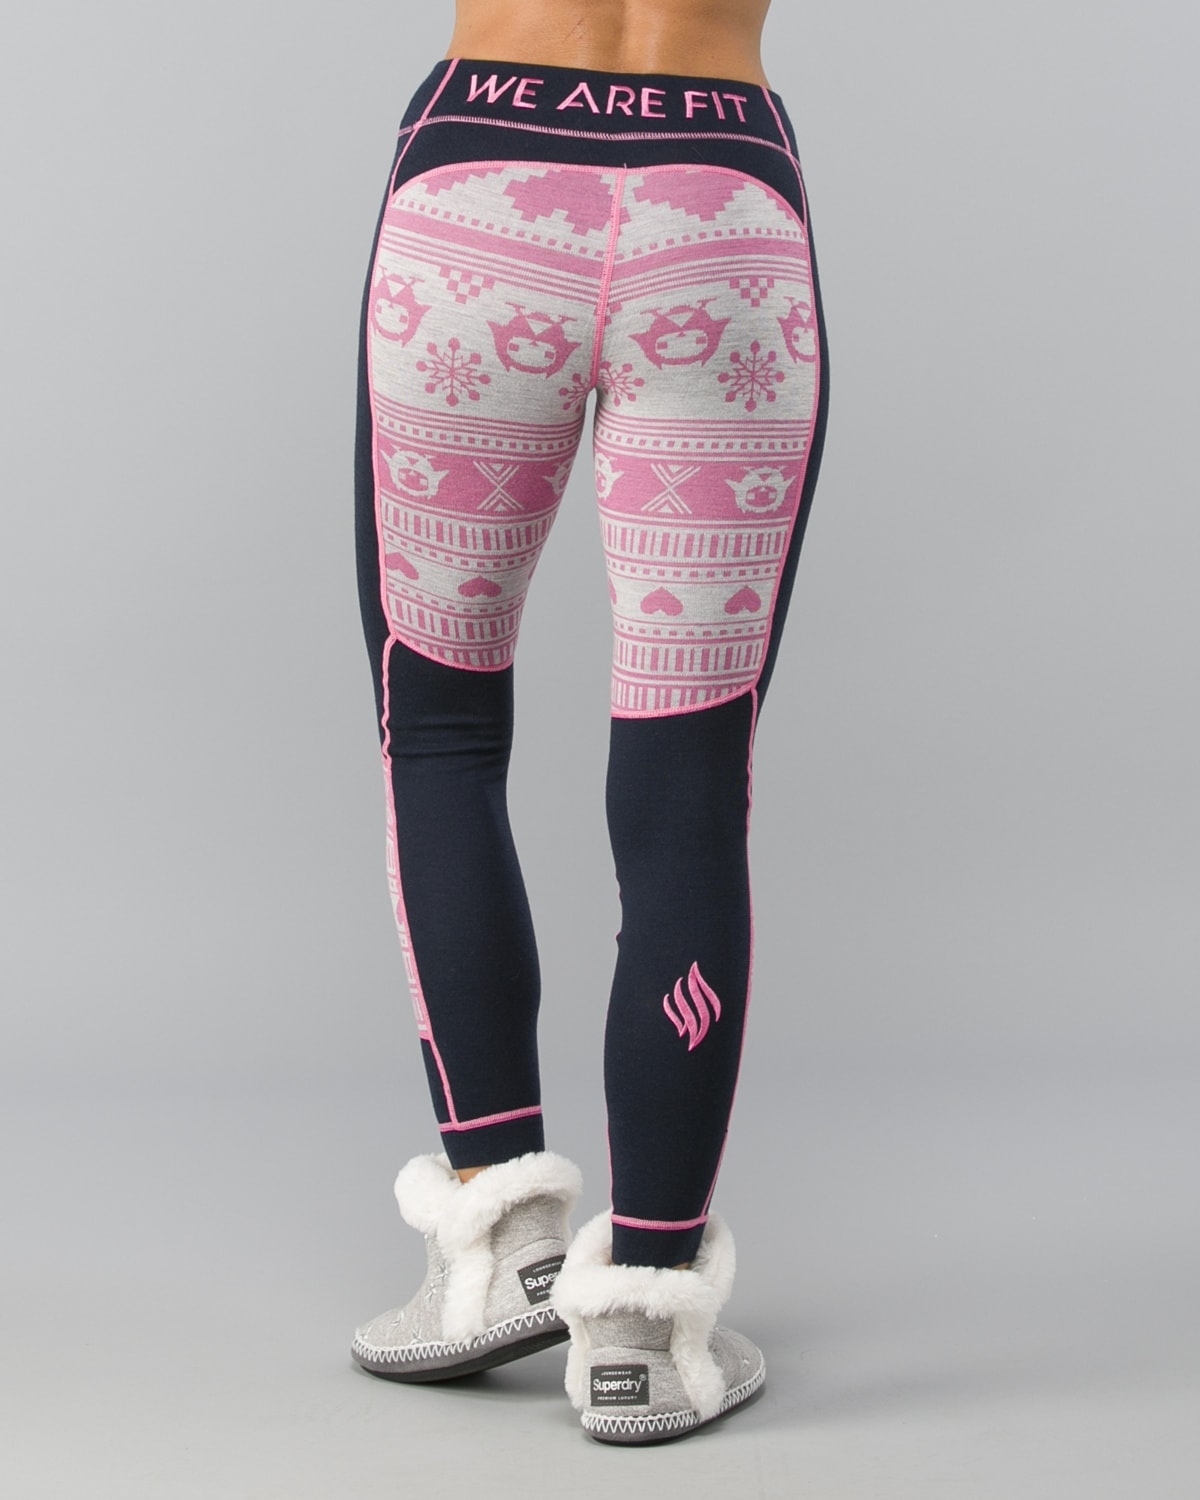 We-Are-Fit-Pink Owl-Merino-Wool Pant4